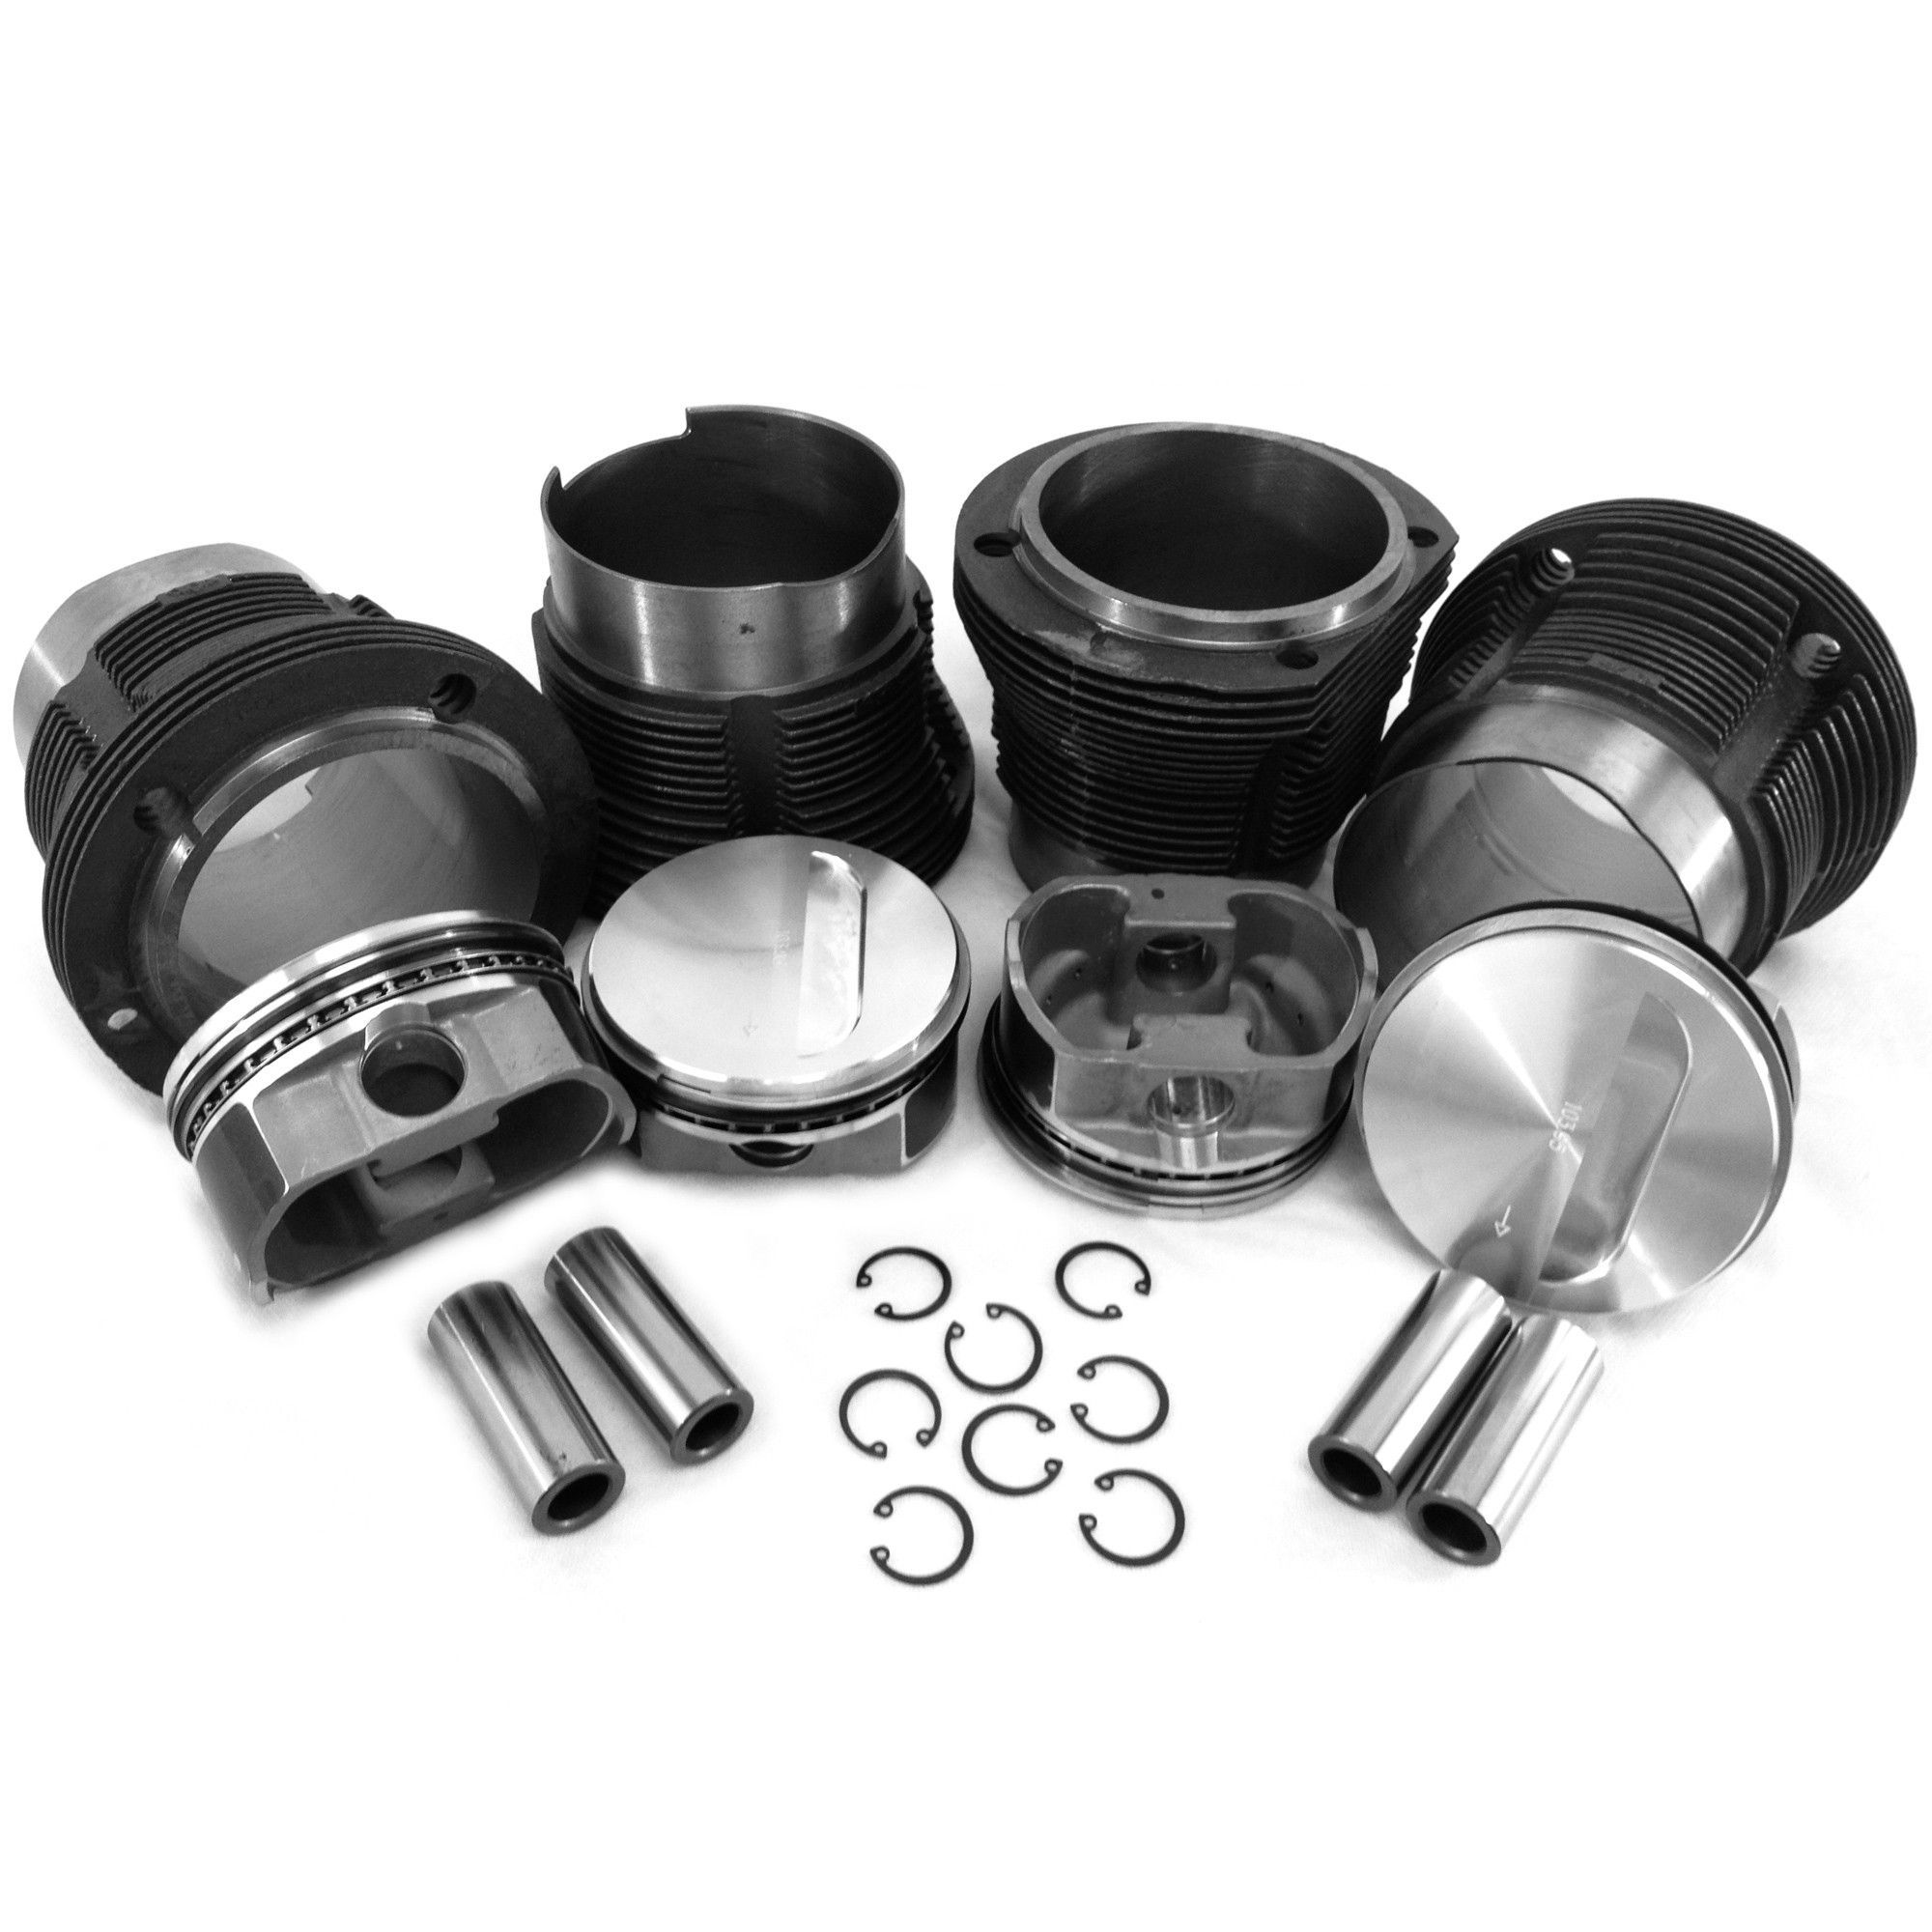 Vw 104mm Porsche 914   Type 4 Bus Piston  U0026 Cylinder Kit